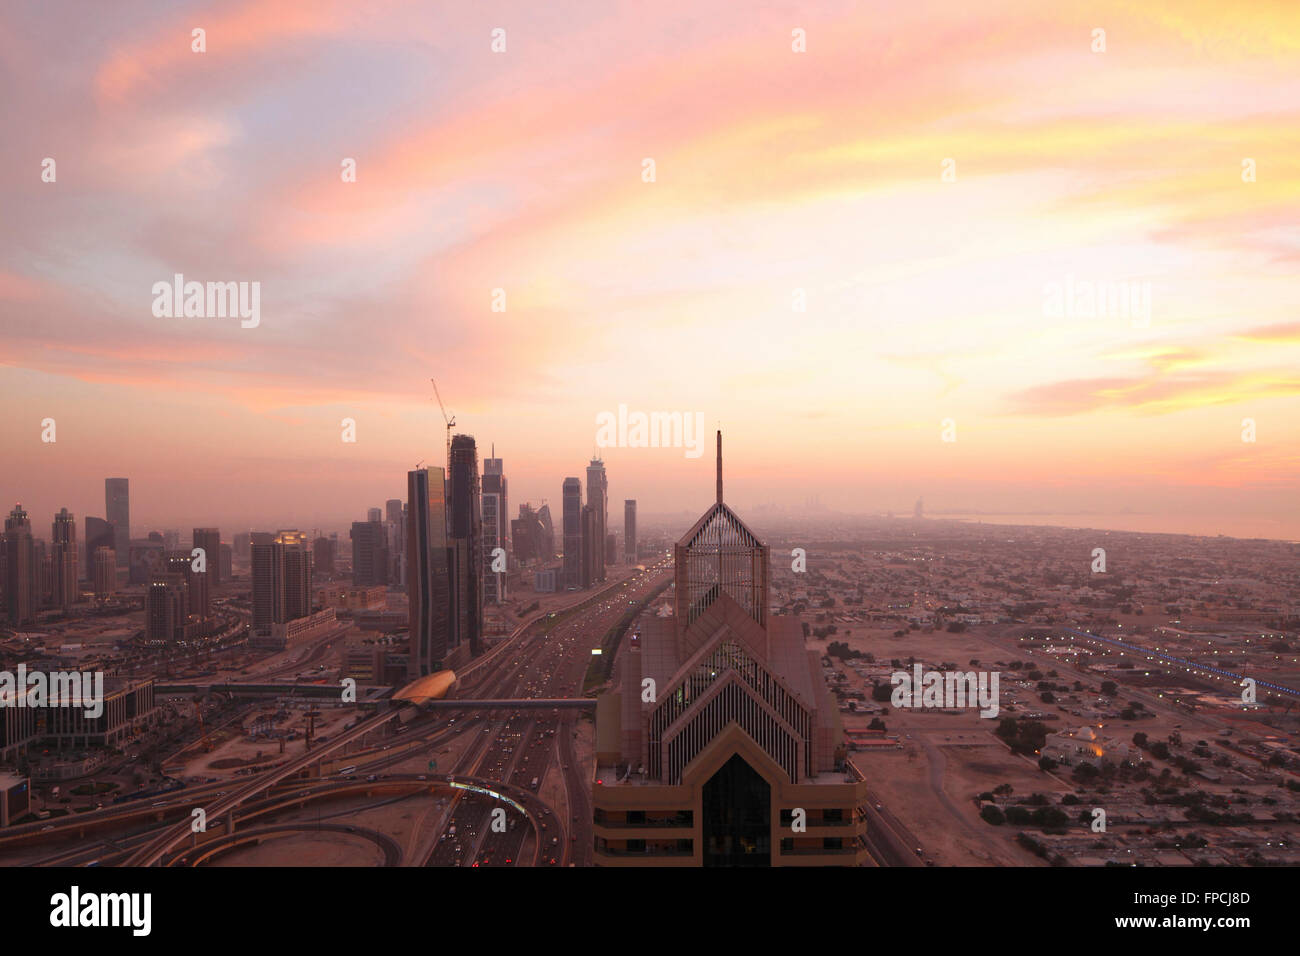 A sunset over Dubai. Showing the city with the skyscrapers in view. - Stock Image